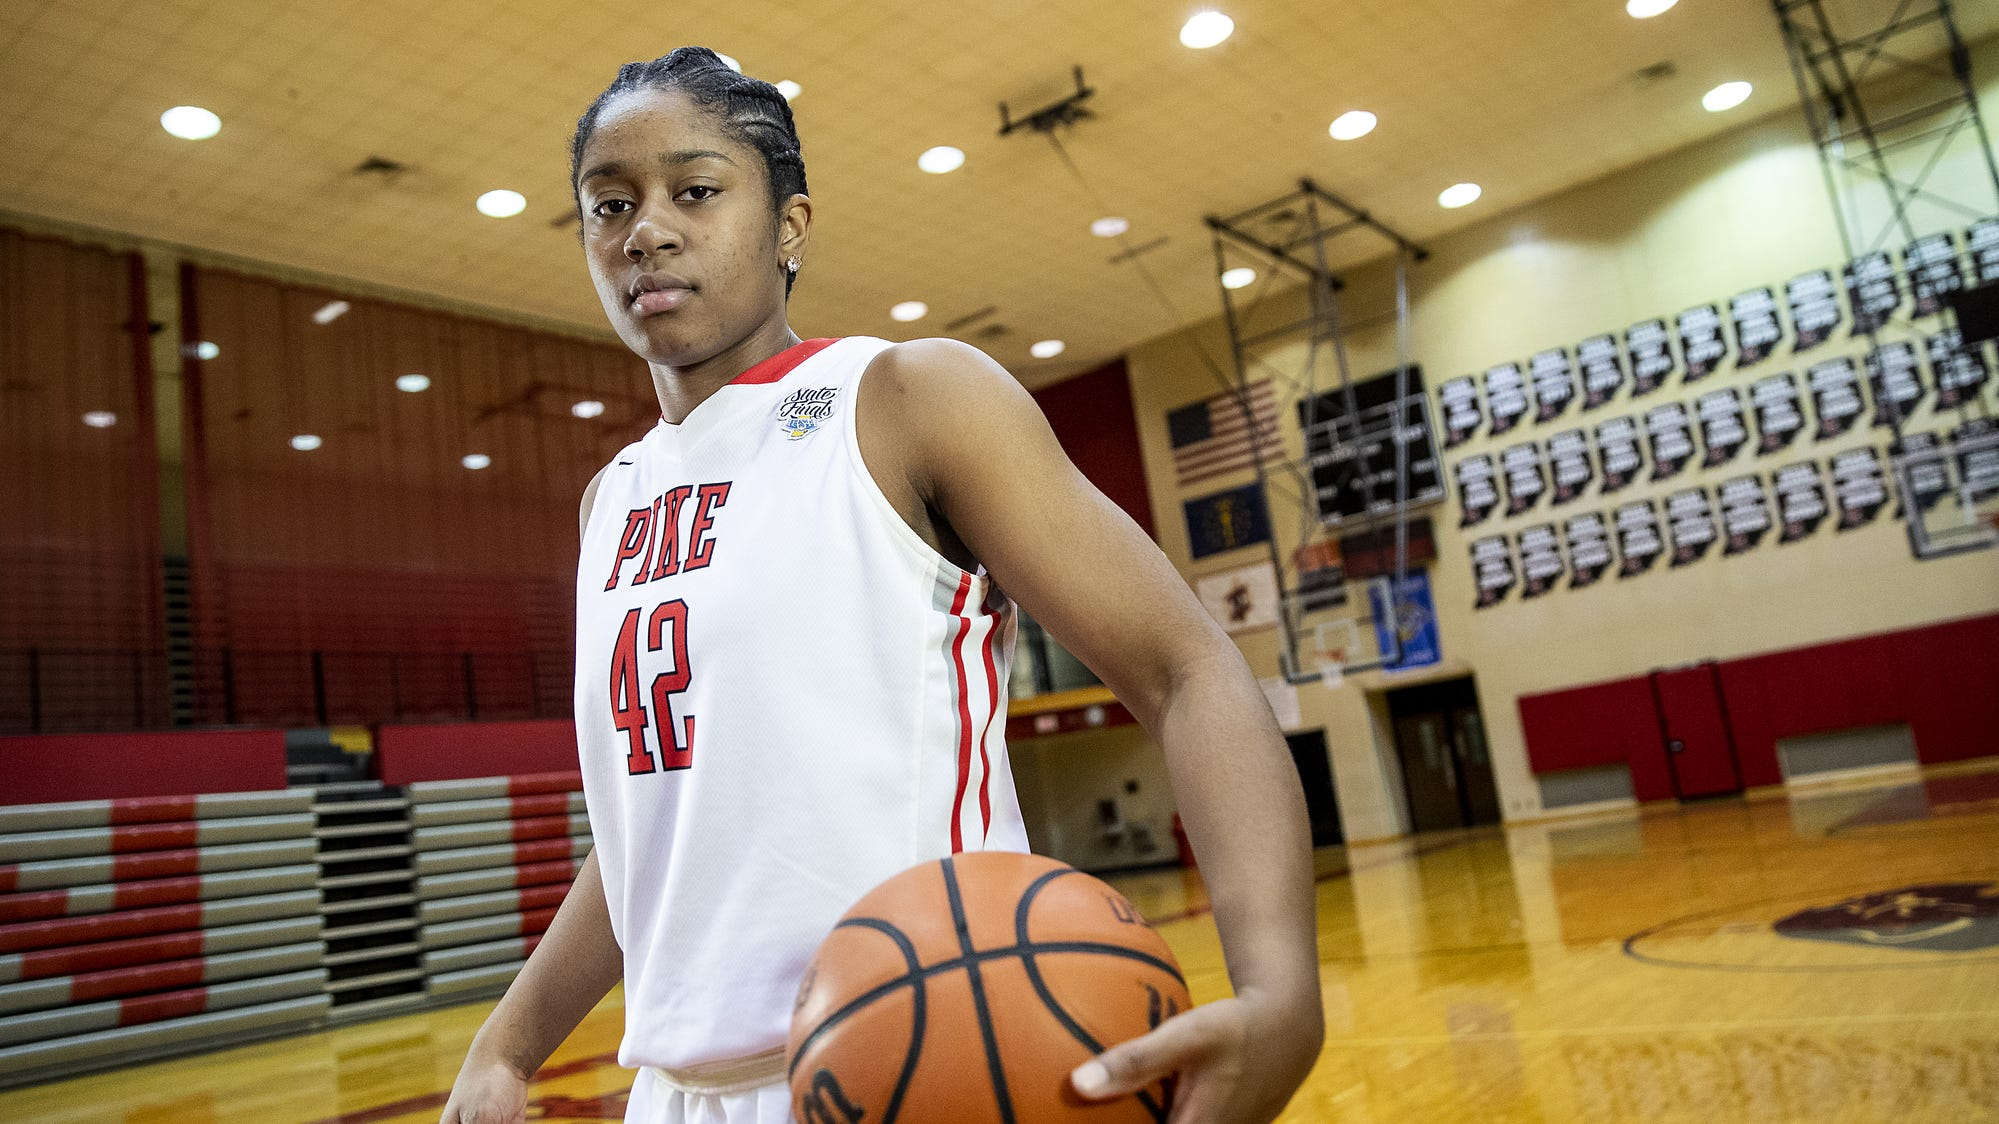 Pike 'shocks the world' with win over North Central for Marion County title